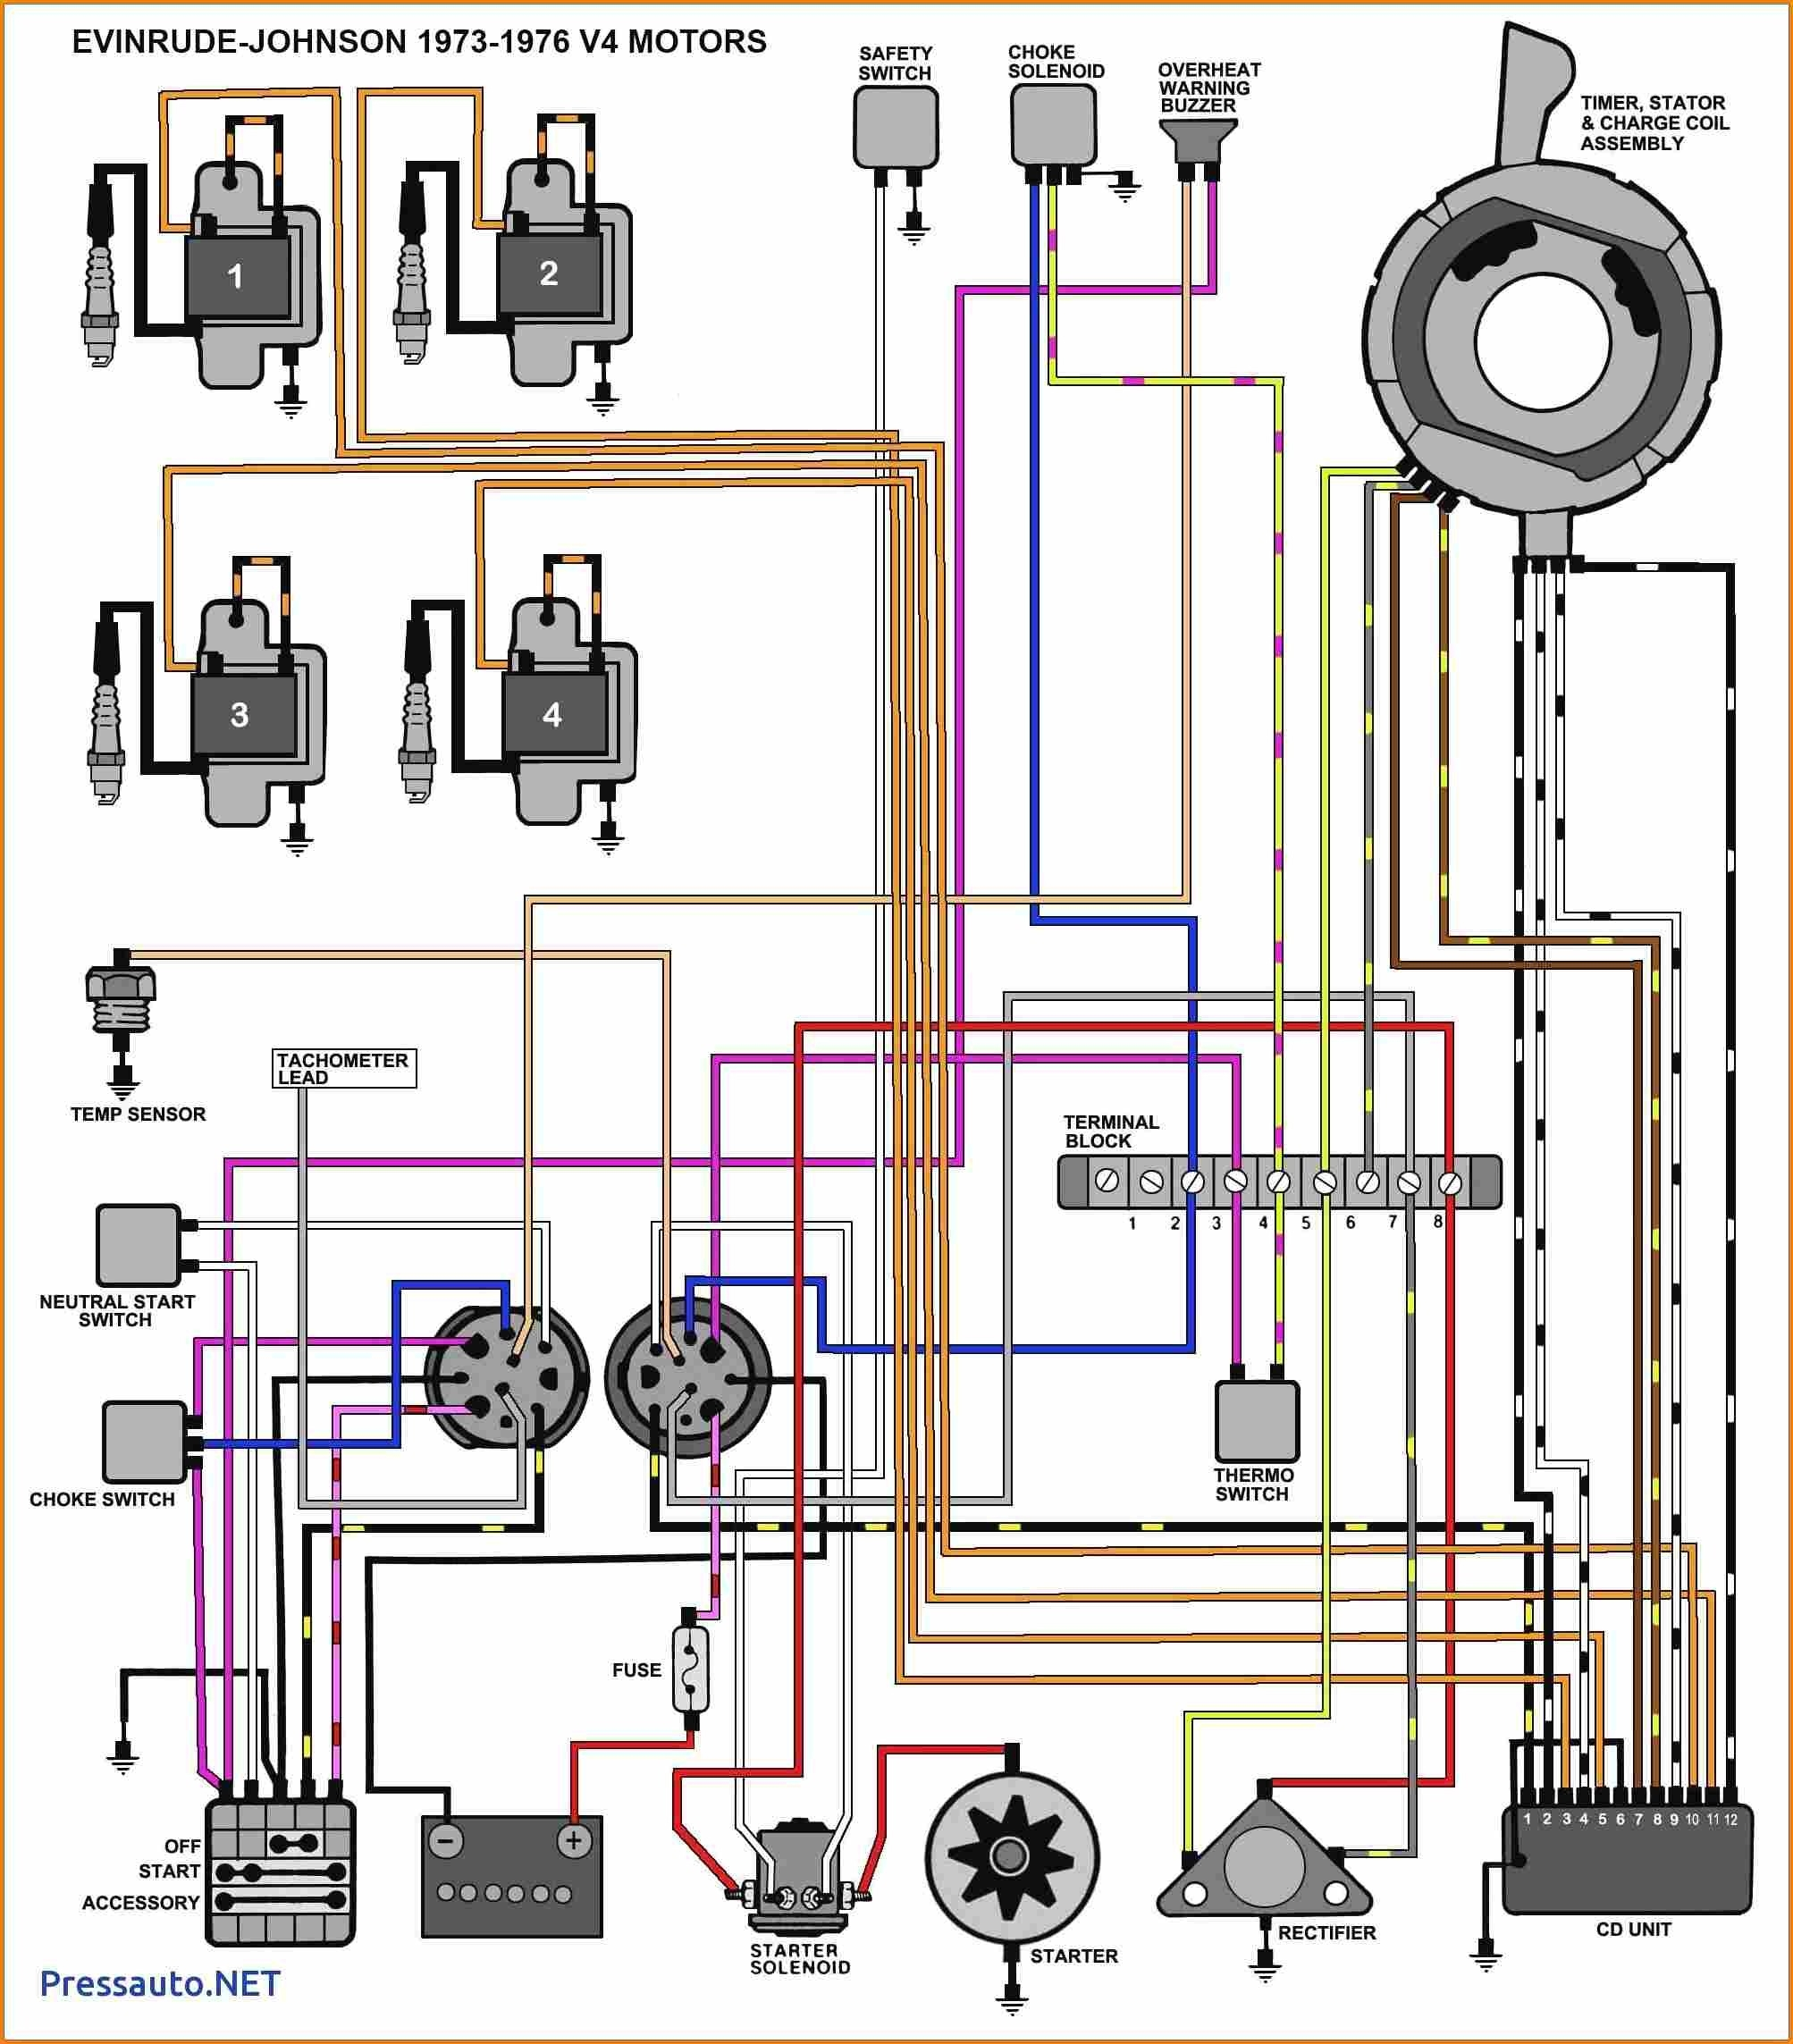 cummins marine wiring diagrams wiring diagram for mercury outboard motor | free wiring ...